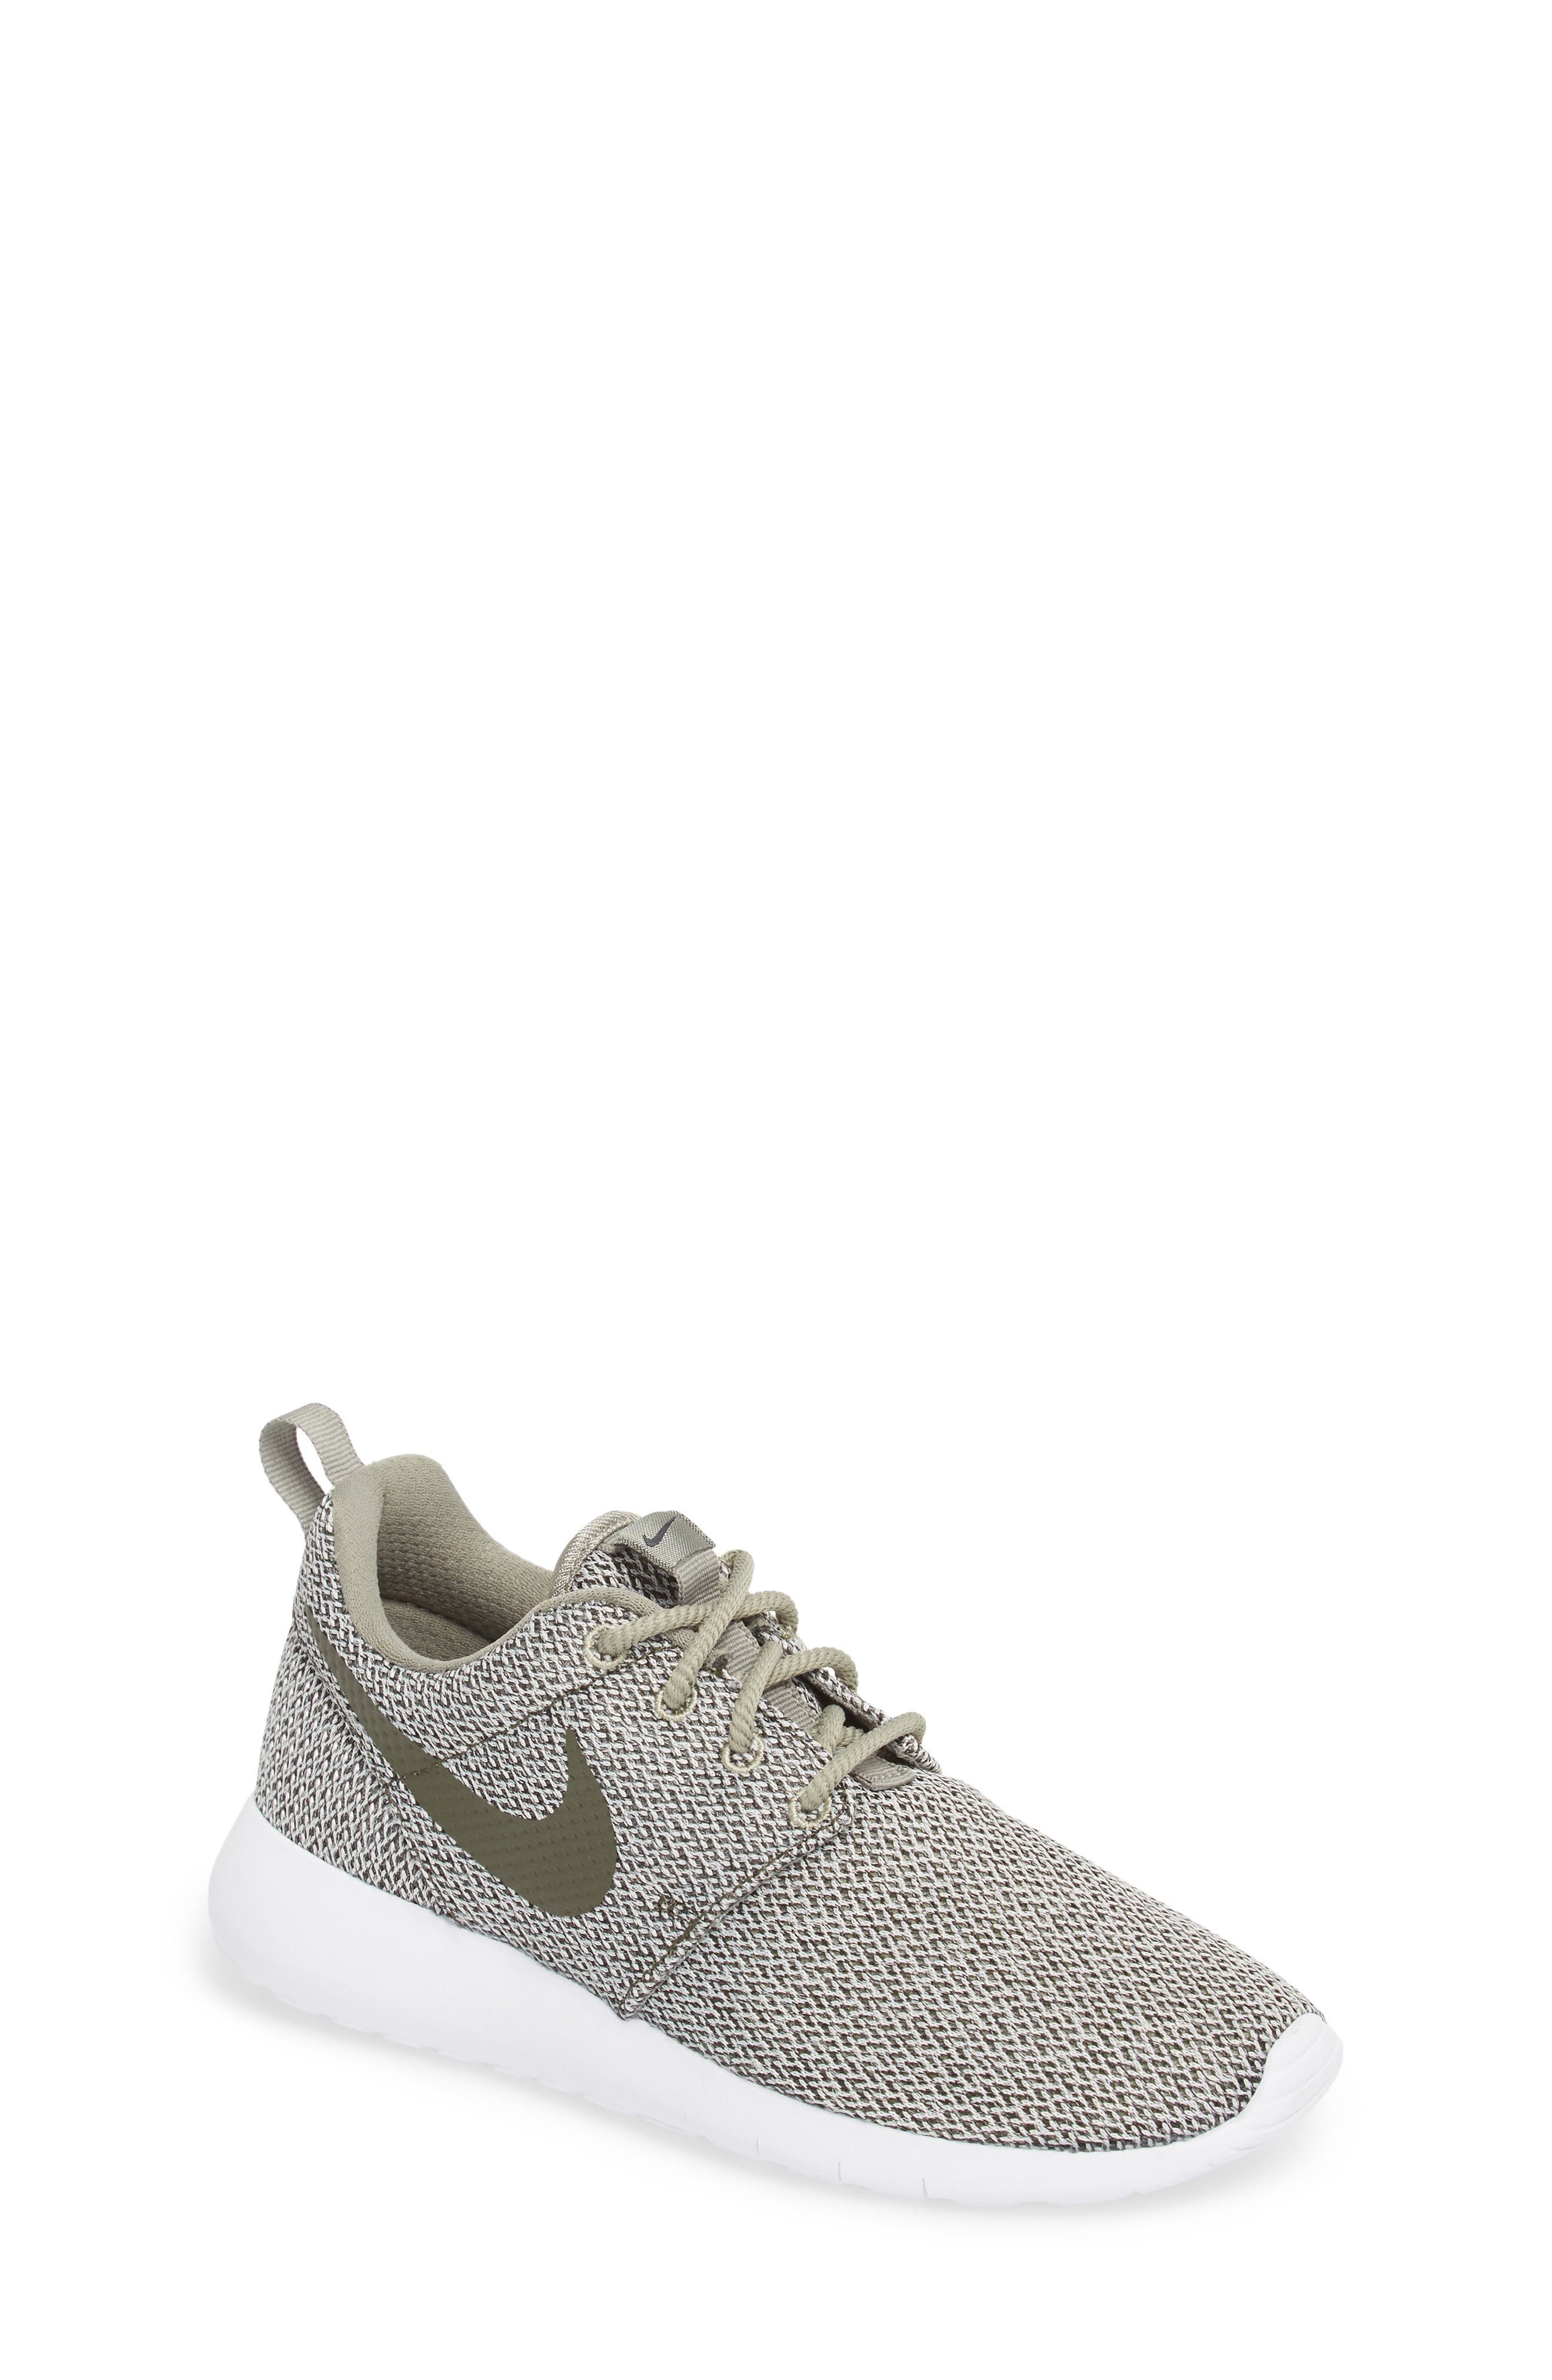 2dcd62d8564419 little girl size 12 nike roshe run print More information about Nike Dunk  High OMS shoes ...